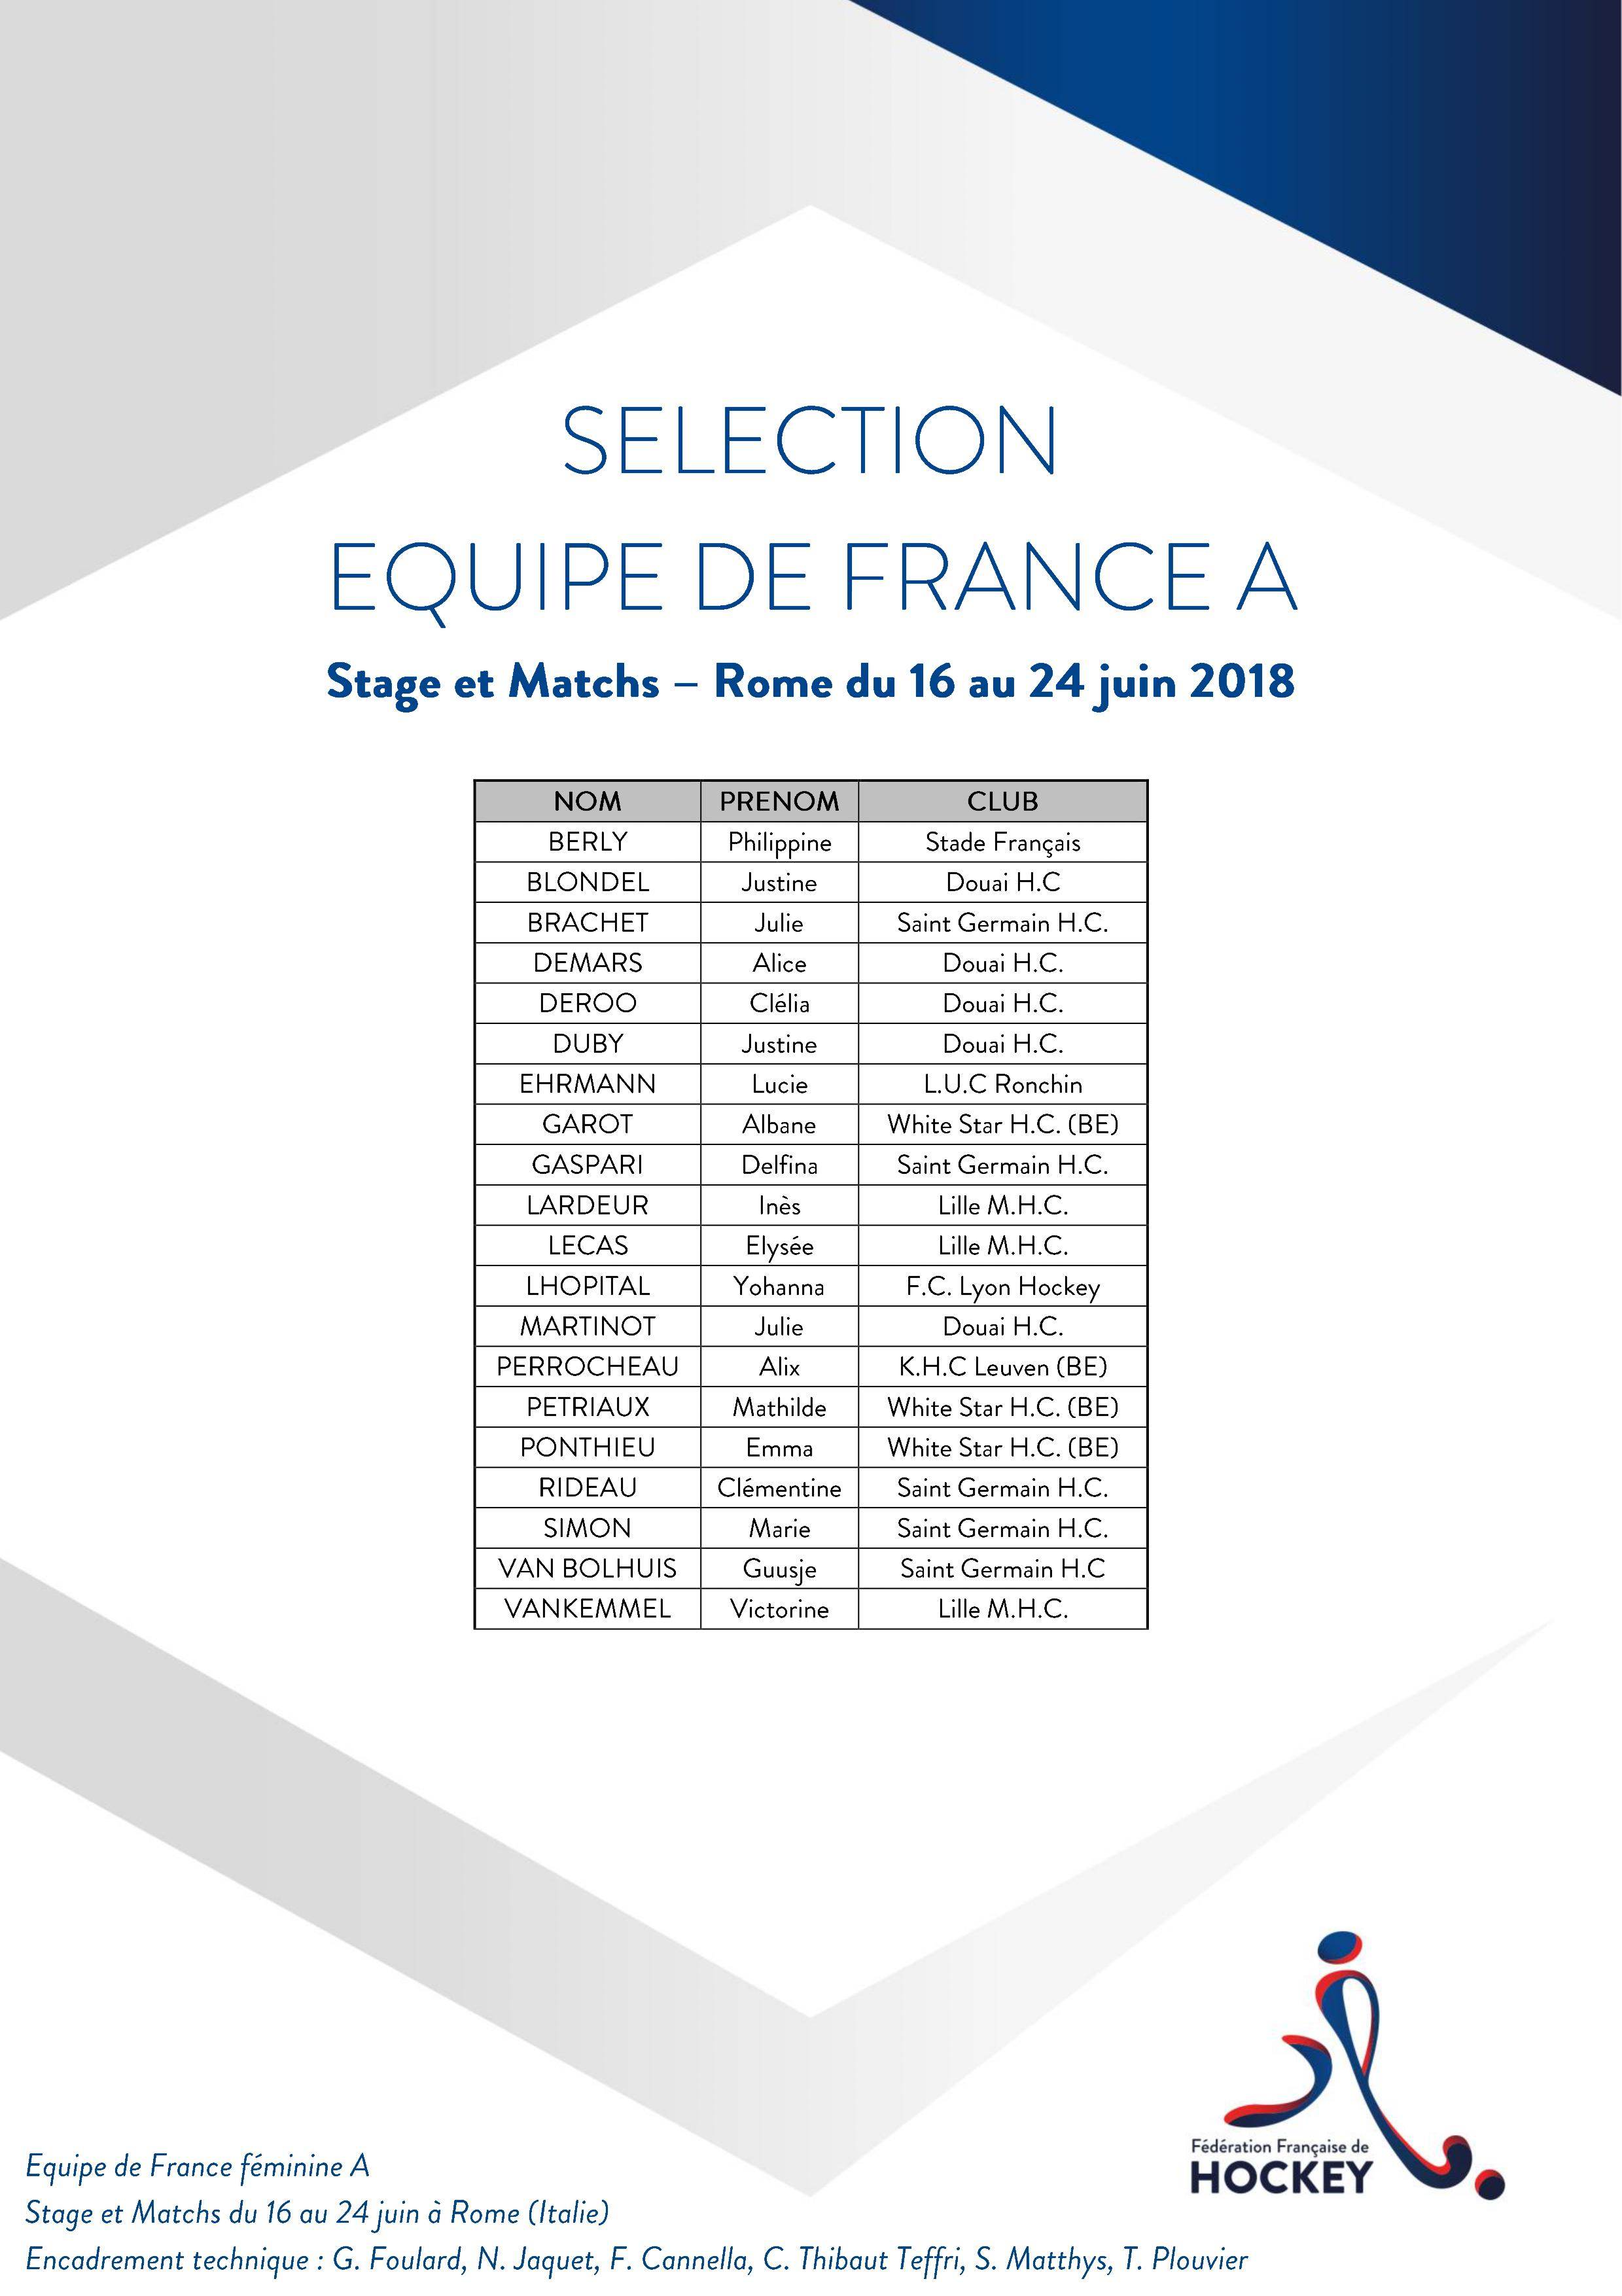 SELECTION EQUIPE DE FRANCE Hockey Rome 16 au 24 juin